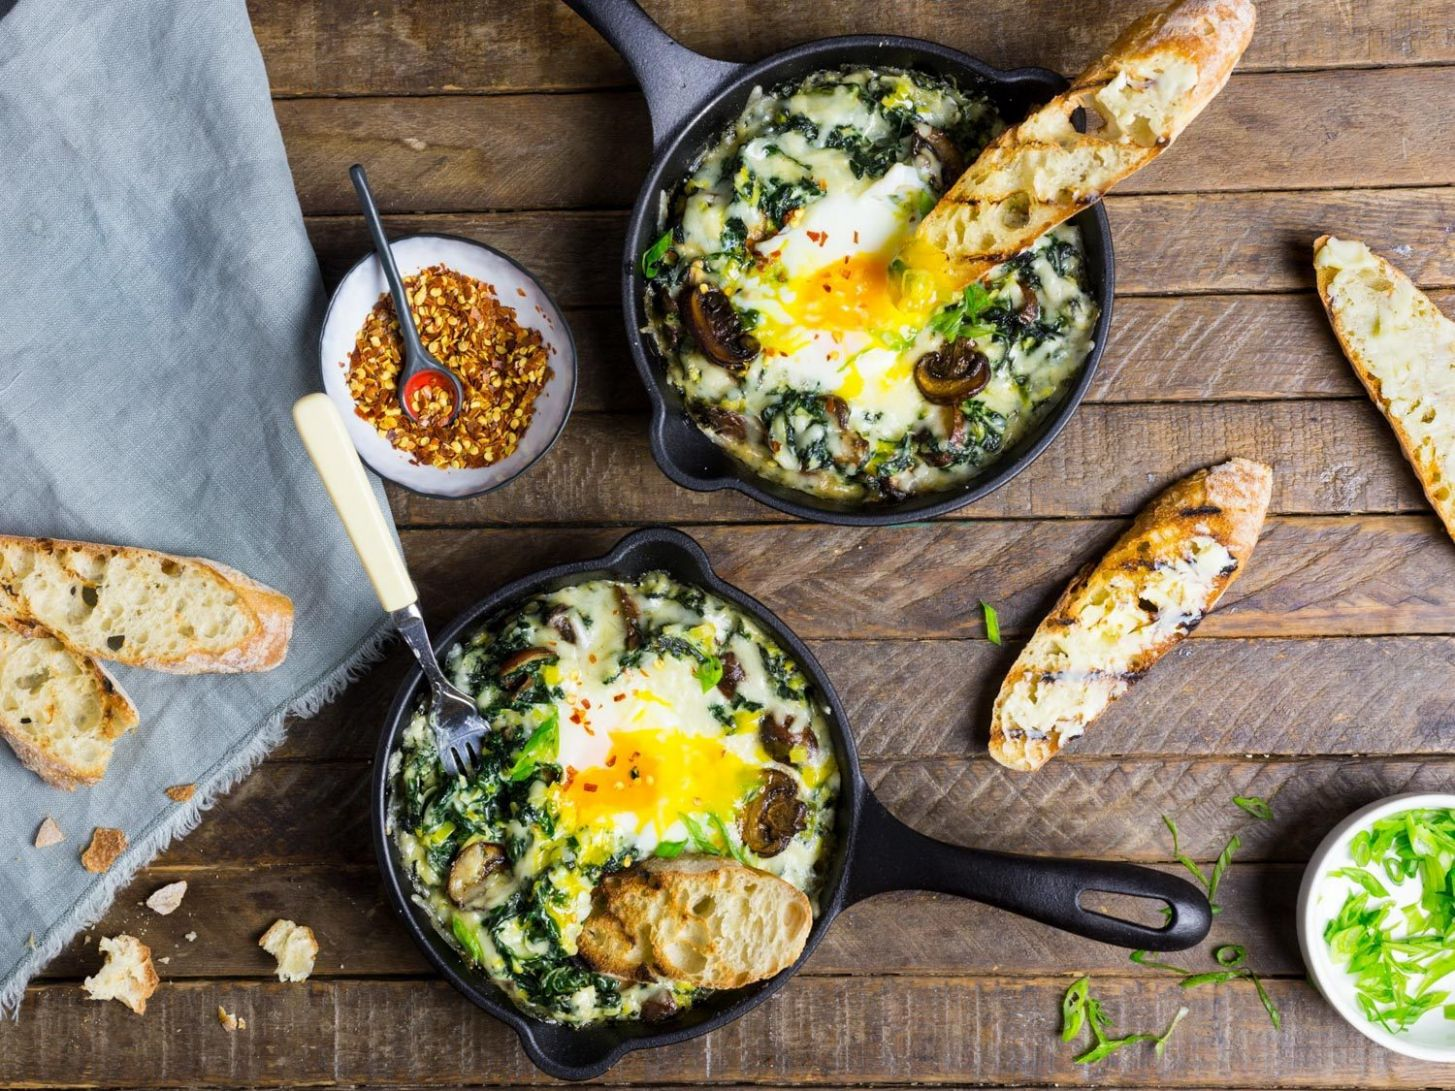 Baked Eggs With Creamy Greens, Mushrooms, and Cheese Recipe